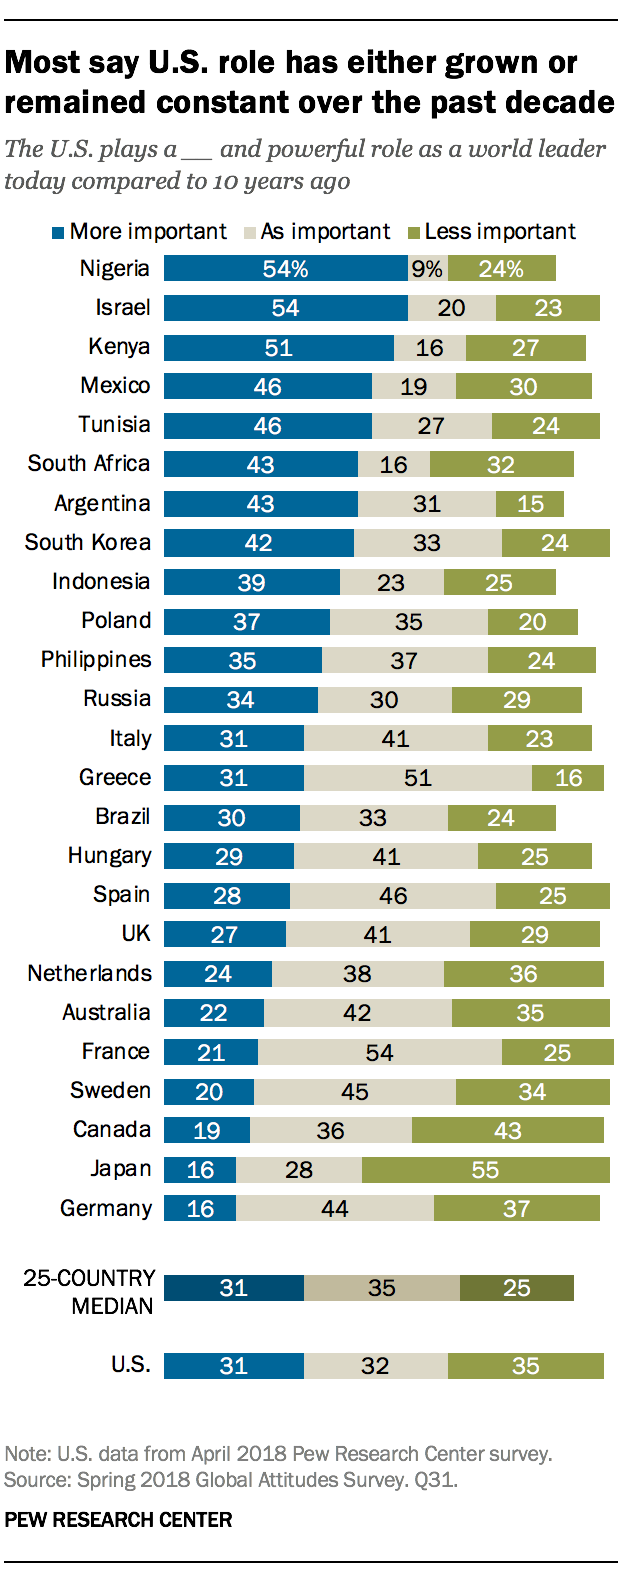 Most say U.S. role has either grown or remained constant over the past decade